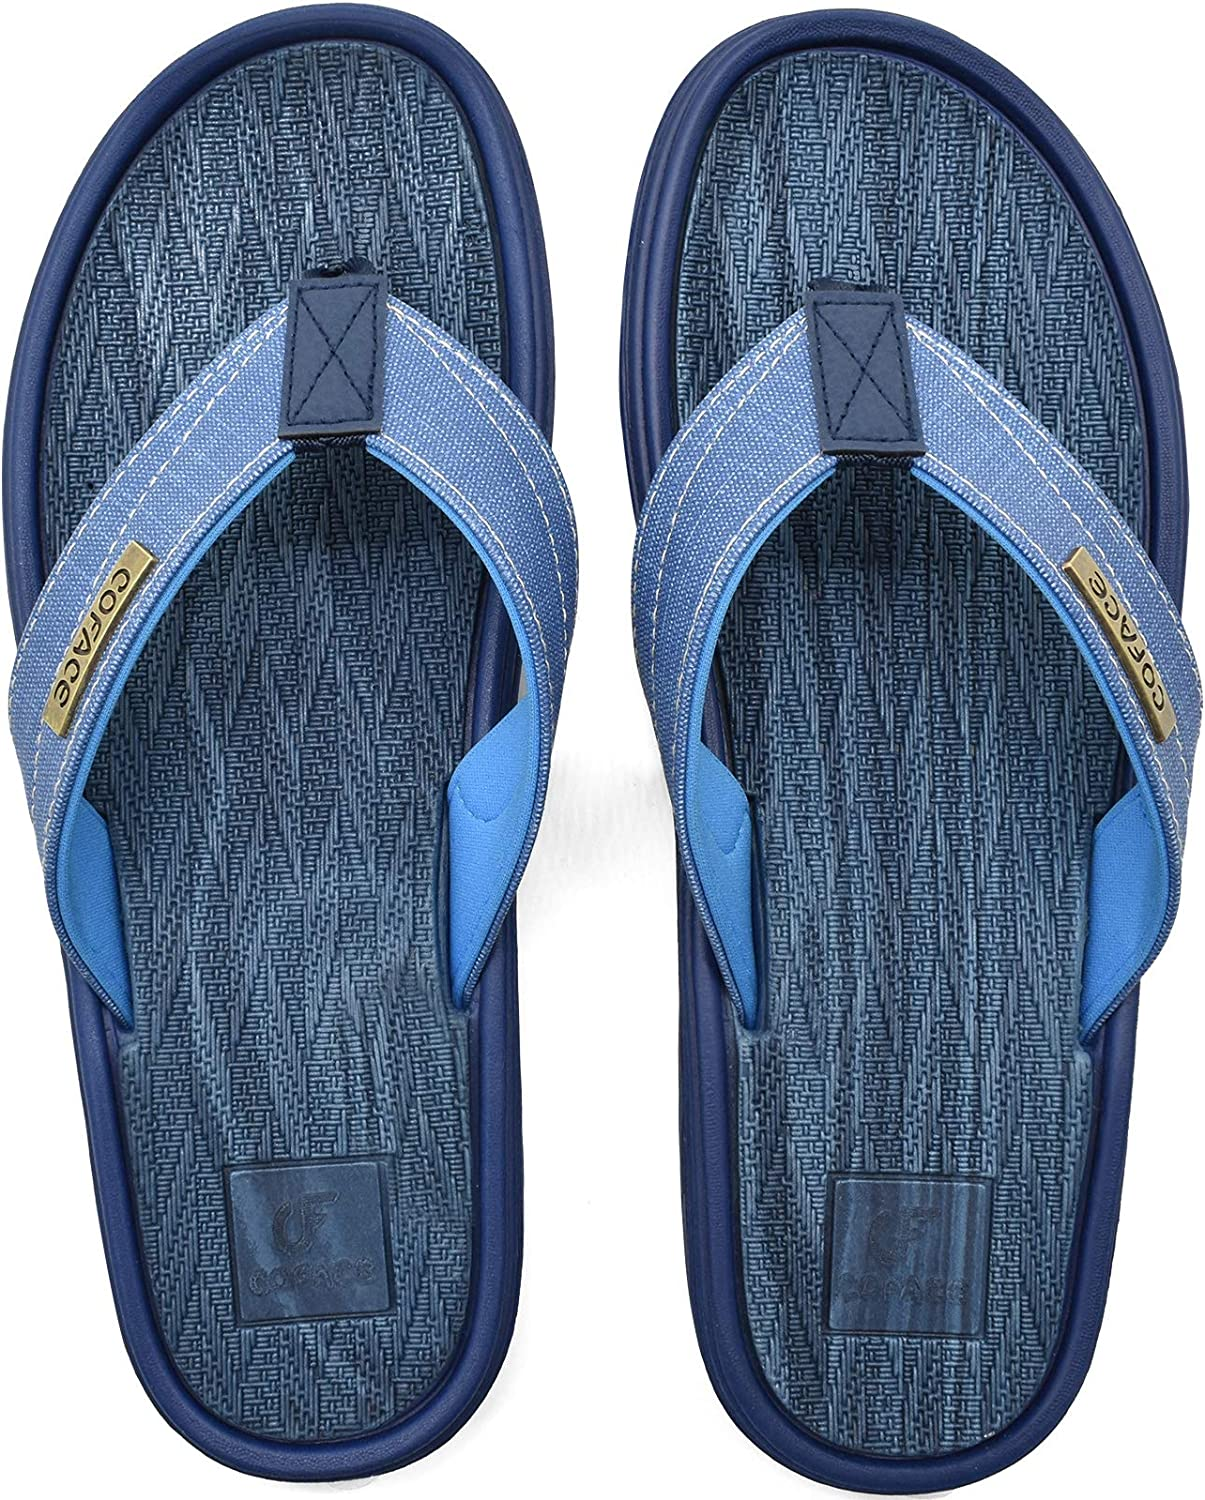 COFACE Mens Flip Flops Sport Beach Pool Thong Sandals Comfortable Slides Slippers Outdoor Holiday Summer Shower Shoes